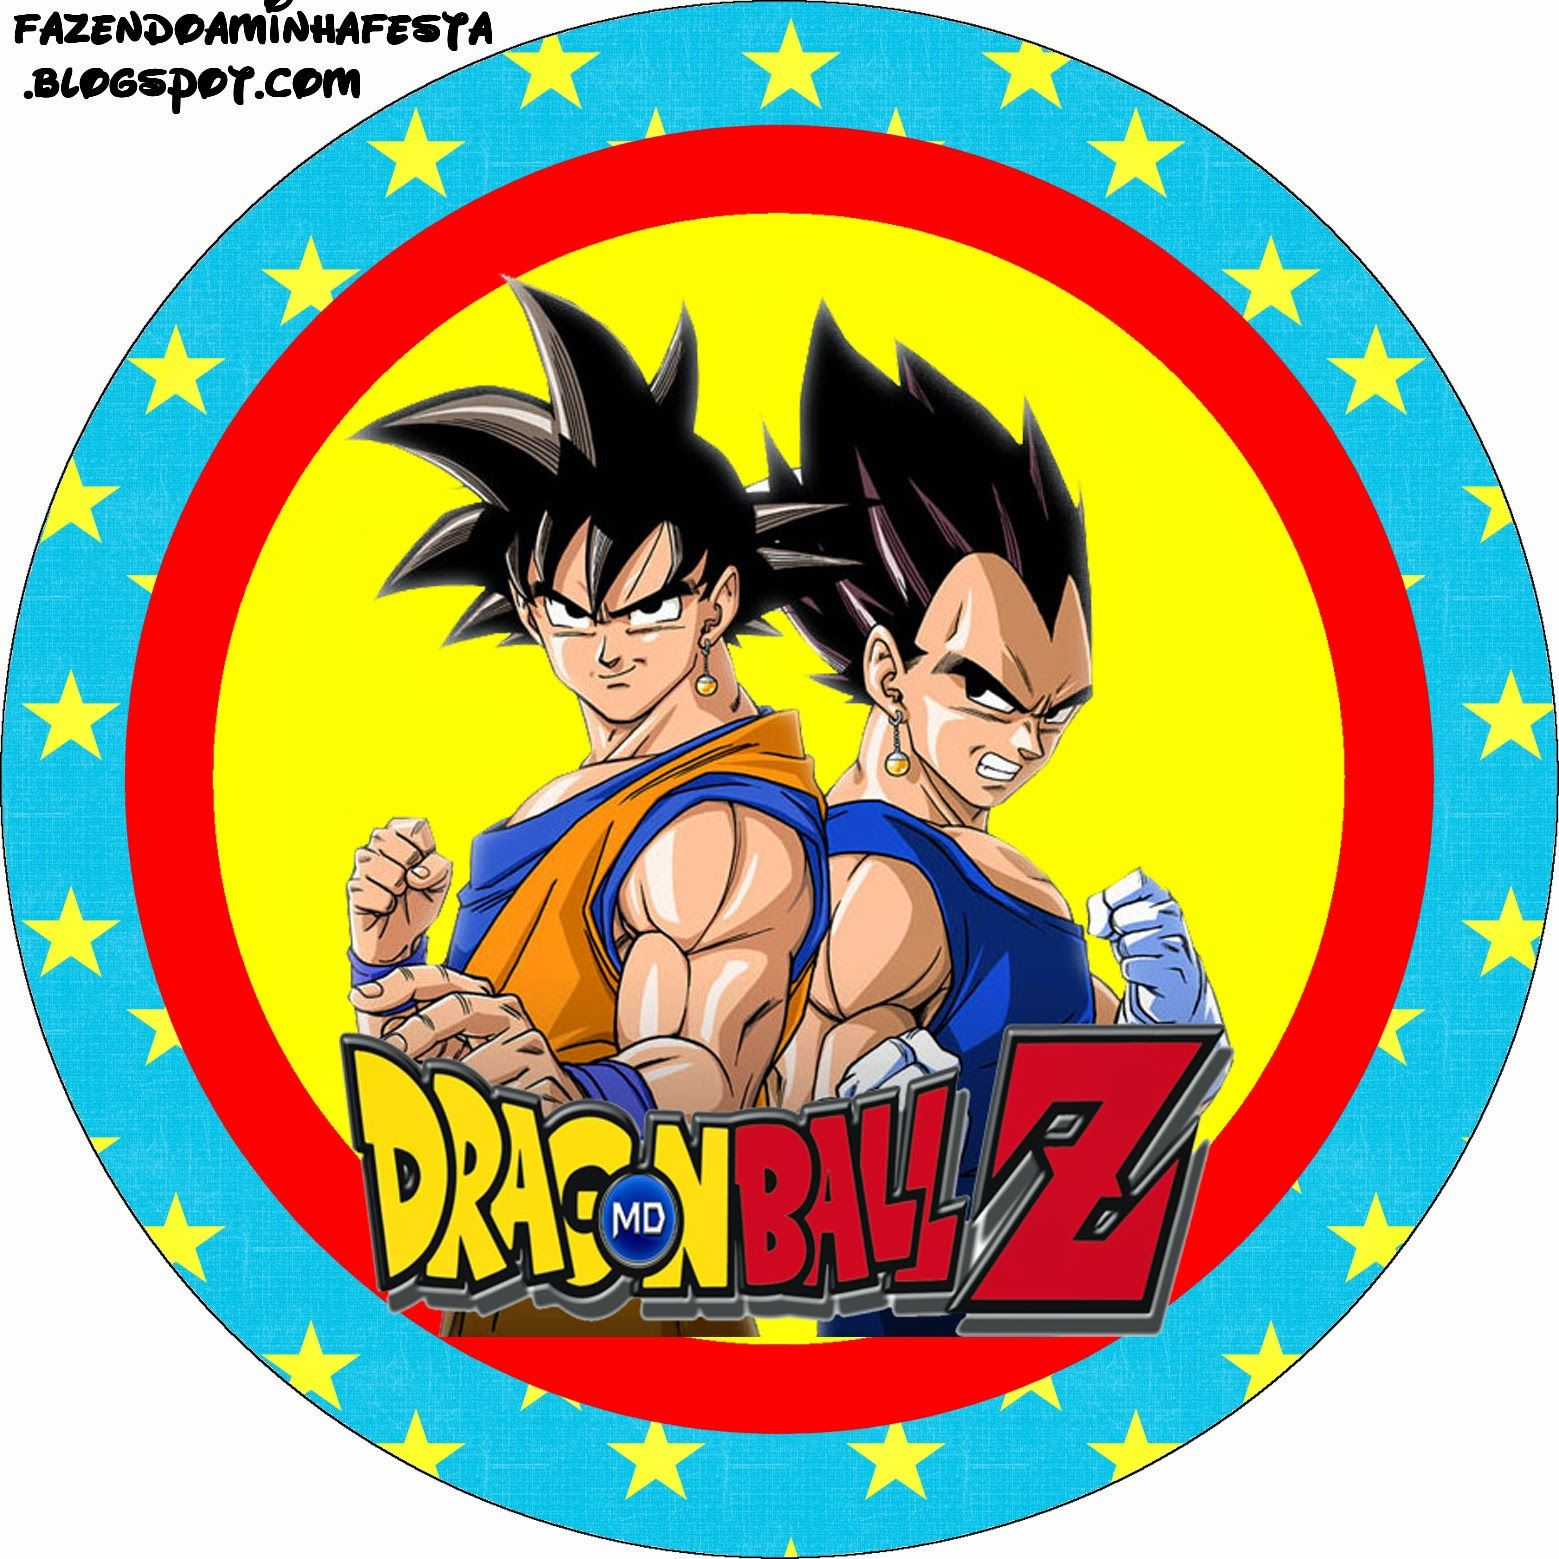 dragon ball z goku logo - Google Search | temporary file thing ...